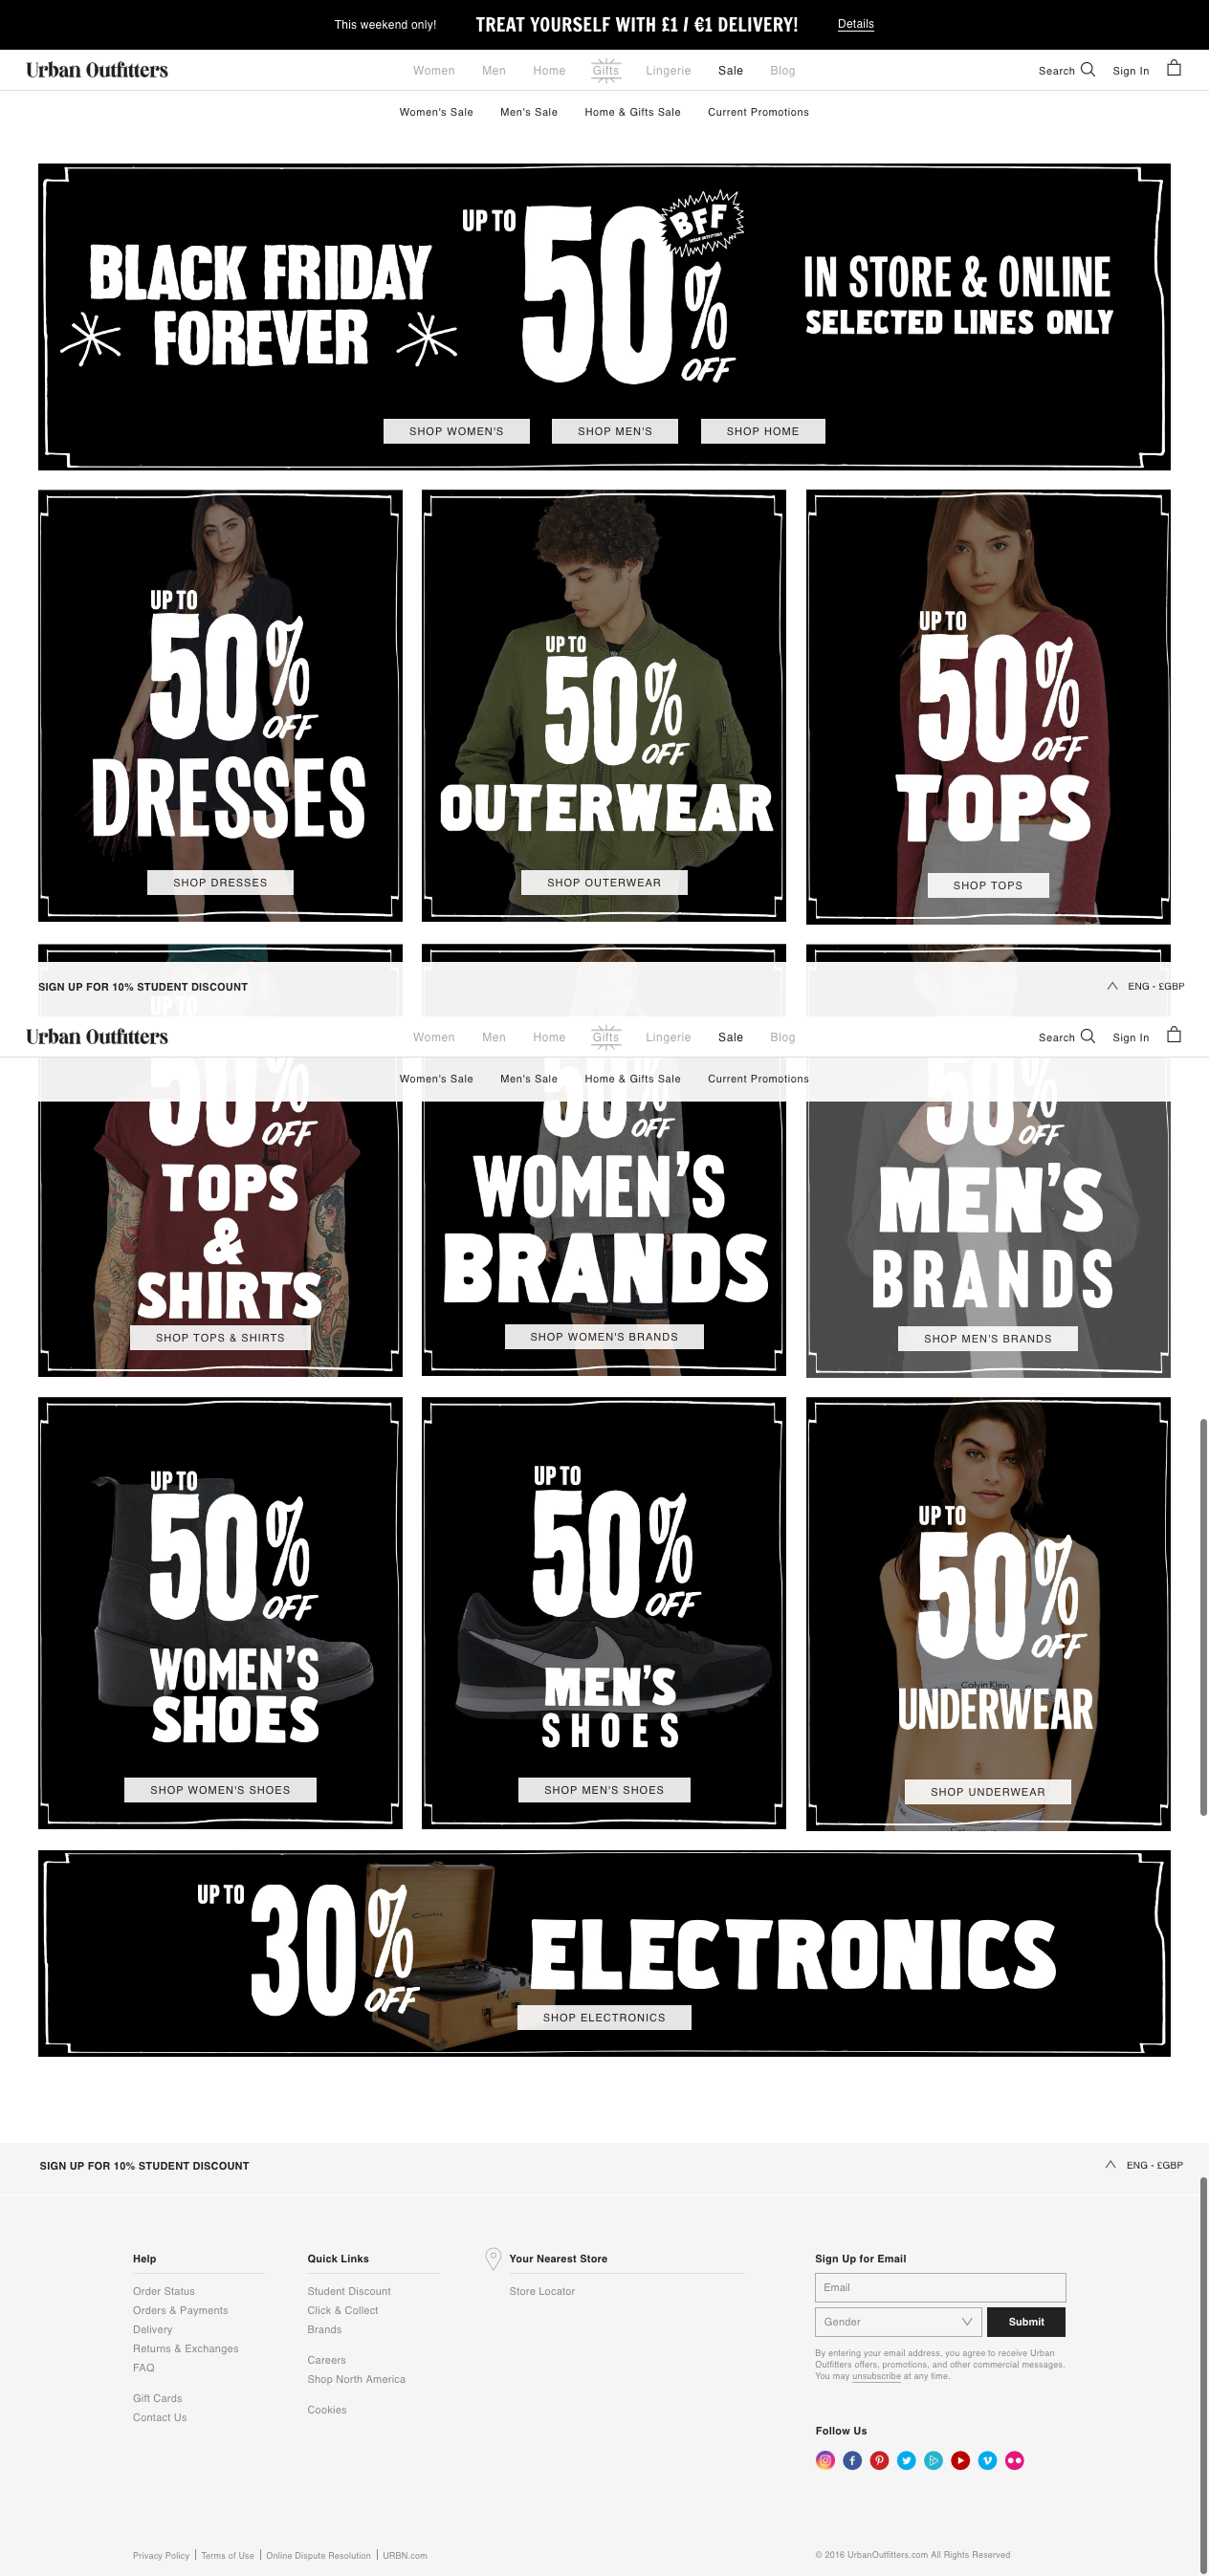 Black Friday Landing Page From Email On Urban Outfitters Thursday 24th Nov Black Friday Shopping Hacks Black Friday Offers